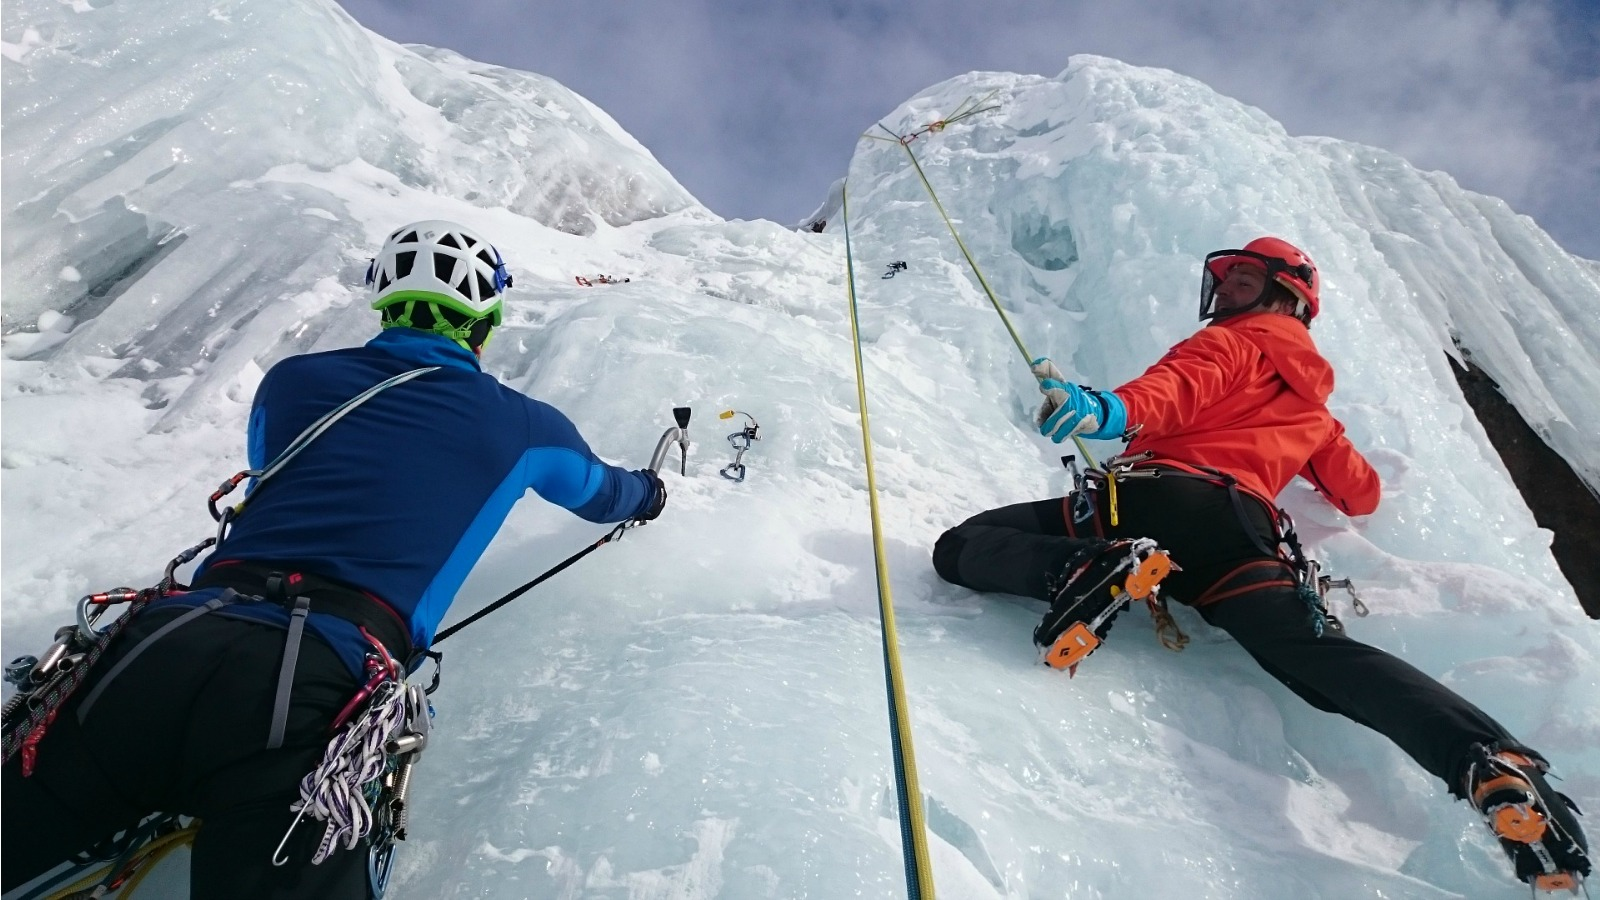 Things to do in Alaska - Ice Climbing